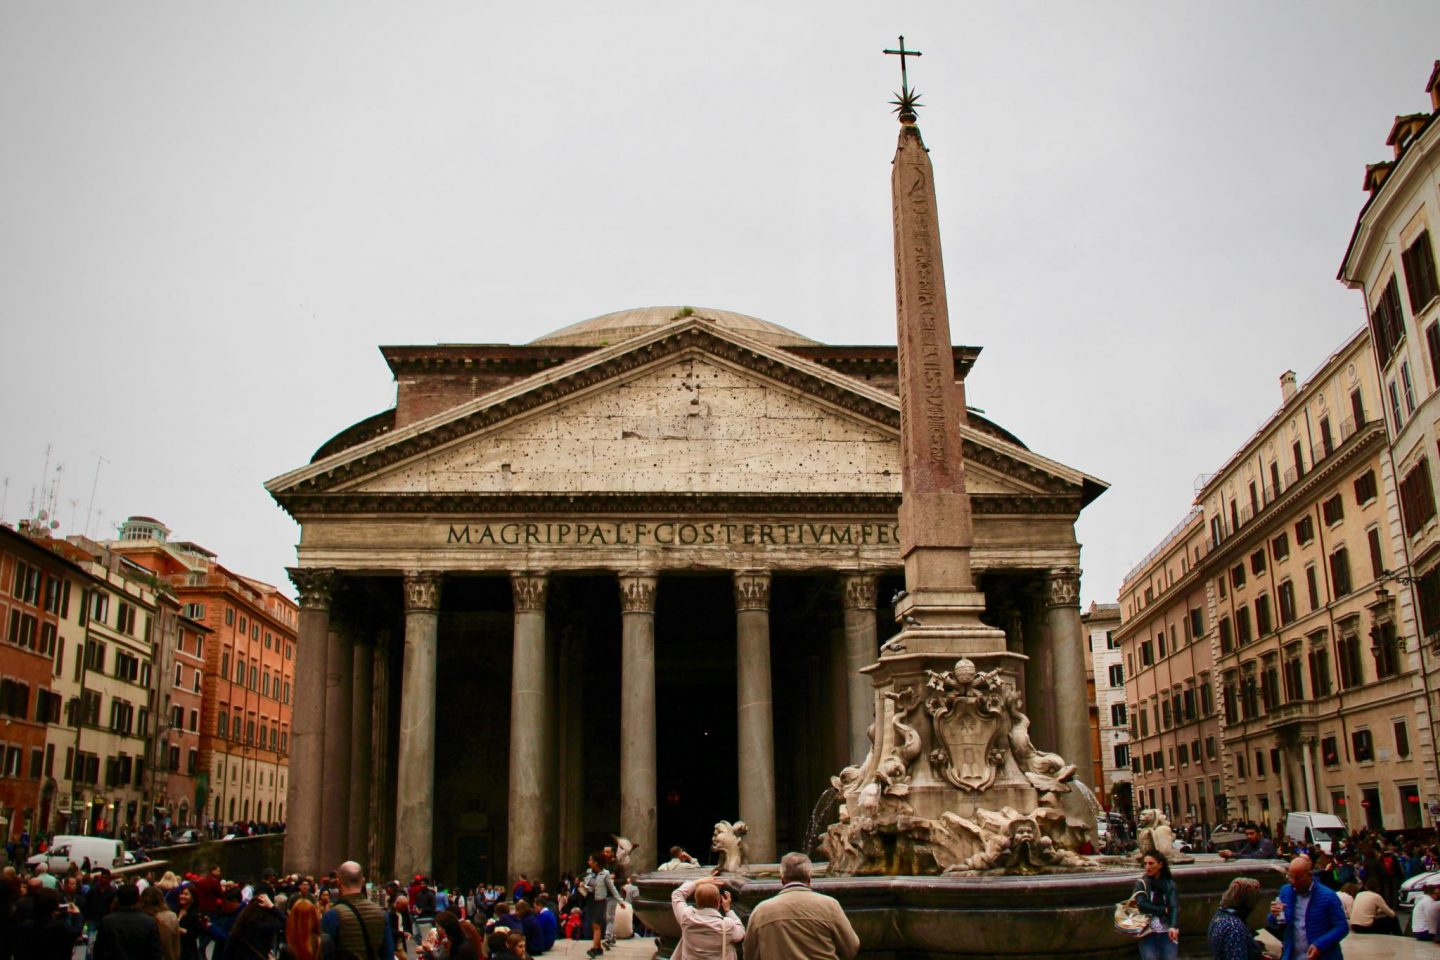 Pantheon ... Top 10 things to do in Rome Italy ... The Spectacular Adventurer